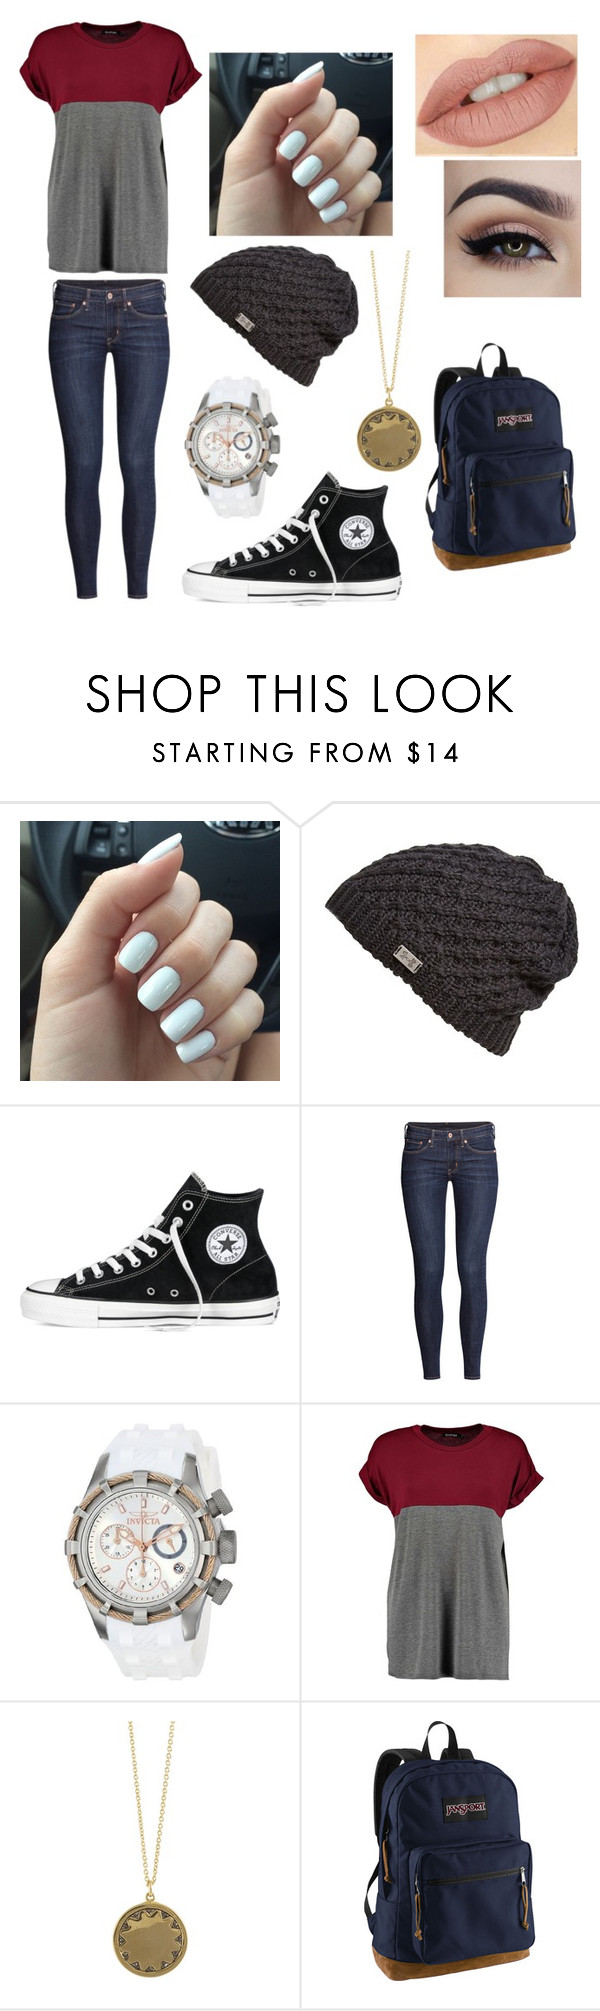 """Untitled #748"" by sarah6623 ❤ liked on Polyvore featuring Under Armour, Converse, H&M, Invicta, House of Harlow 1960, JanSport, women's clothing, women, female and woman"